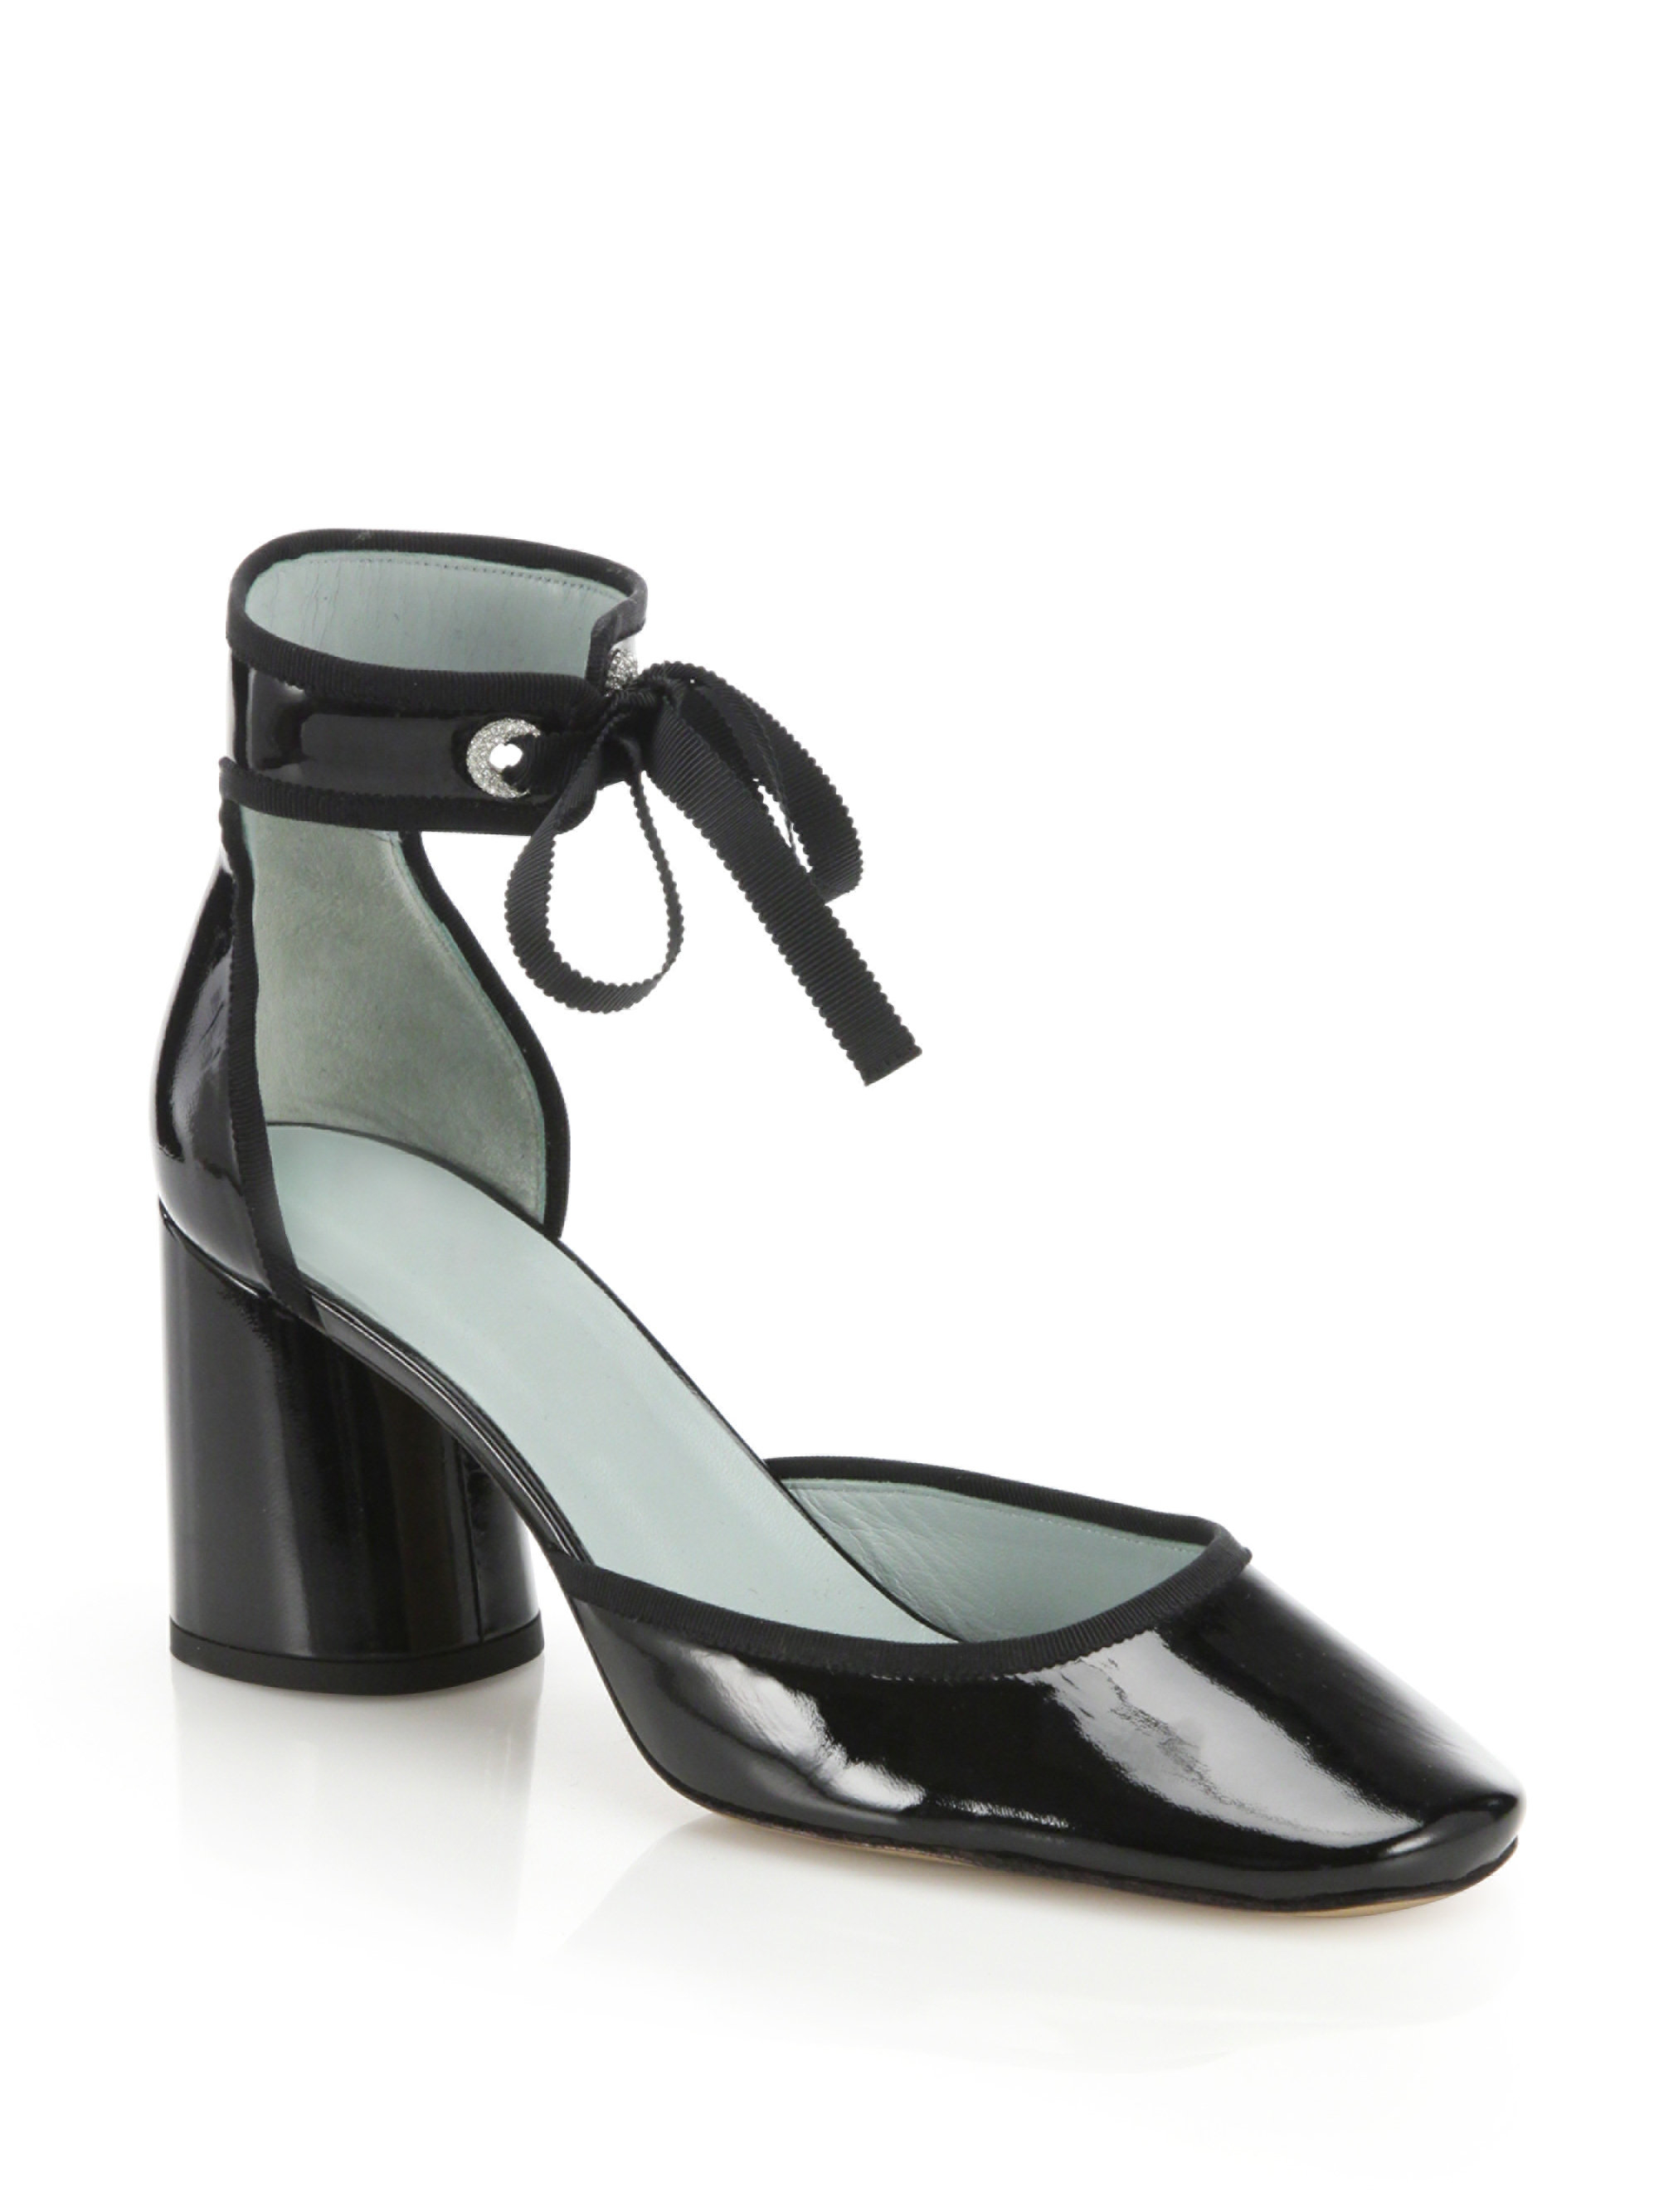 Marc Jacobs Patent Leather Ankle Strap Sandals buy cheap pictures tumblr cheap sale in China largest supplier popular U7GLEuWT1